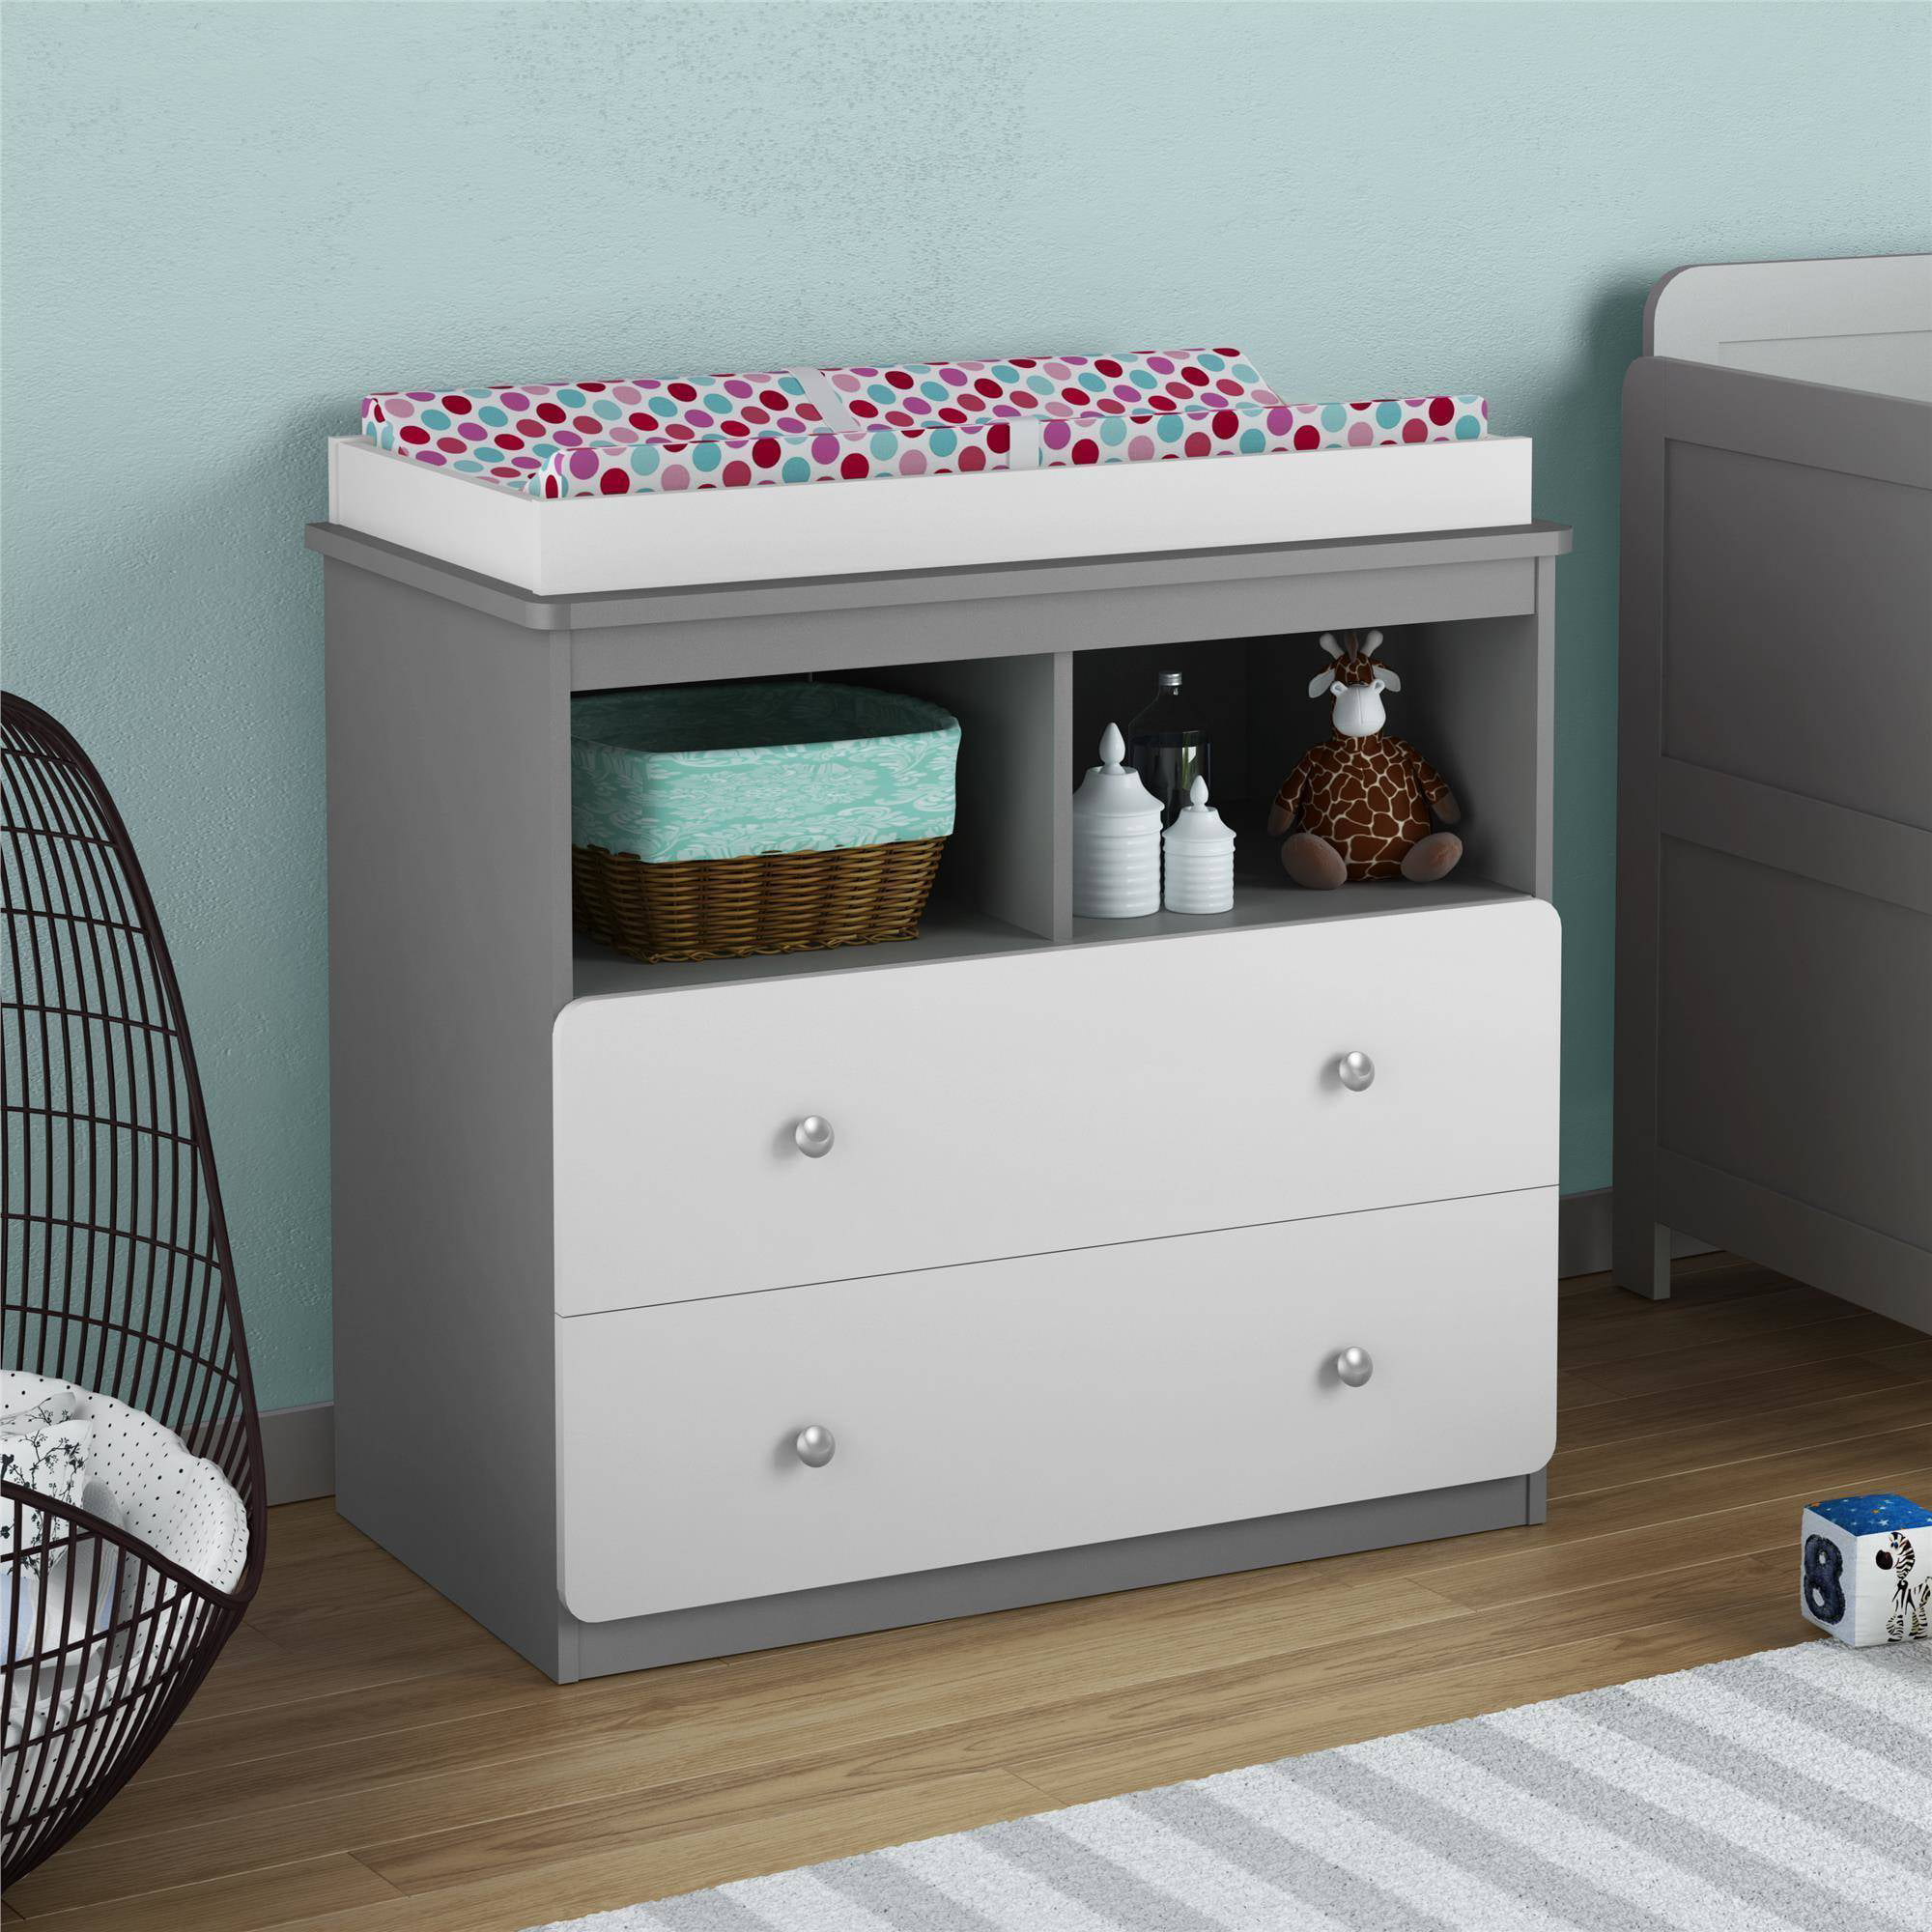 cosco willow lake changing table light slate gray and white  - cosco willow lake changing table light slate gray and white  walmartcom